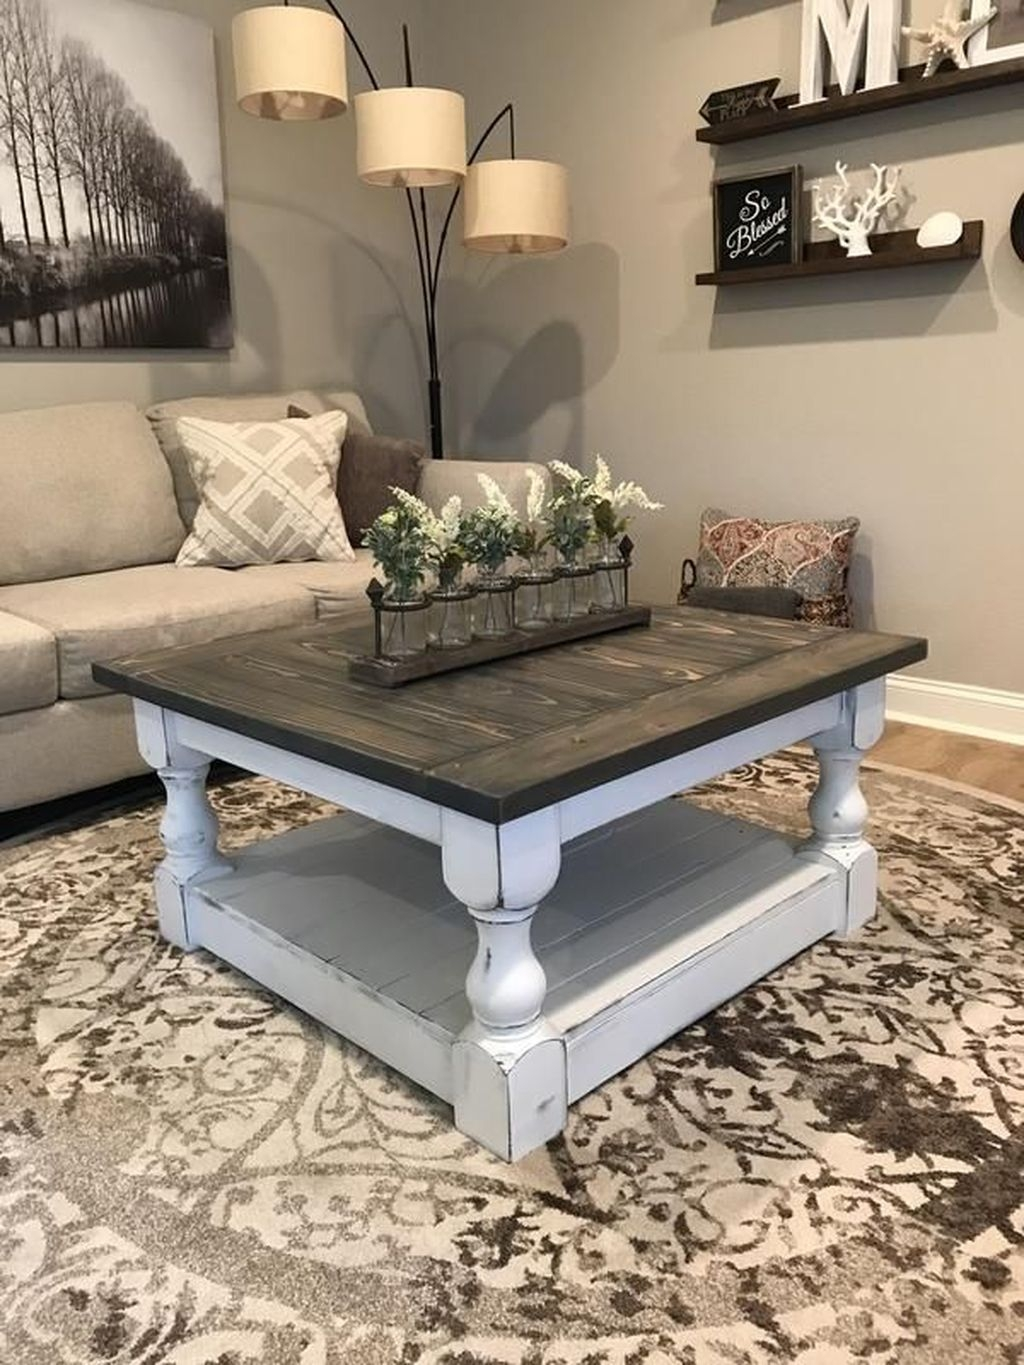 Rustic Farmhouse Table Ideas To Use In The Decor 30